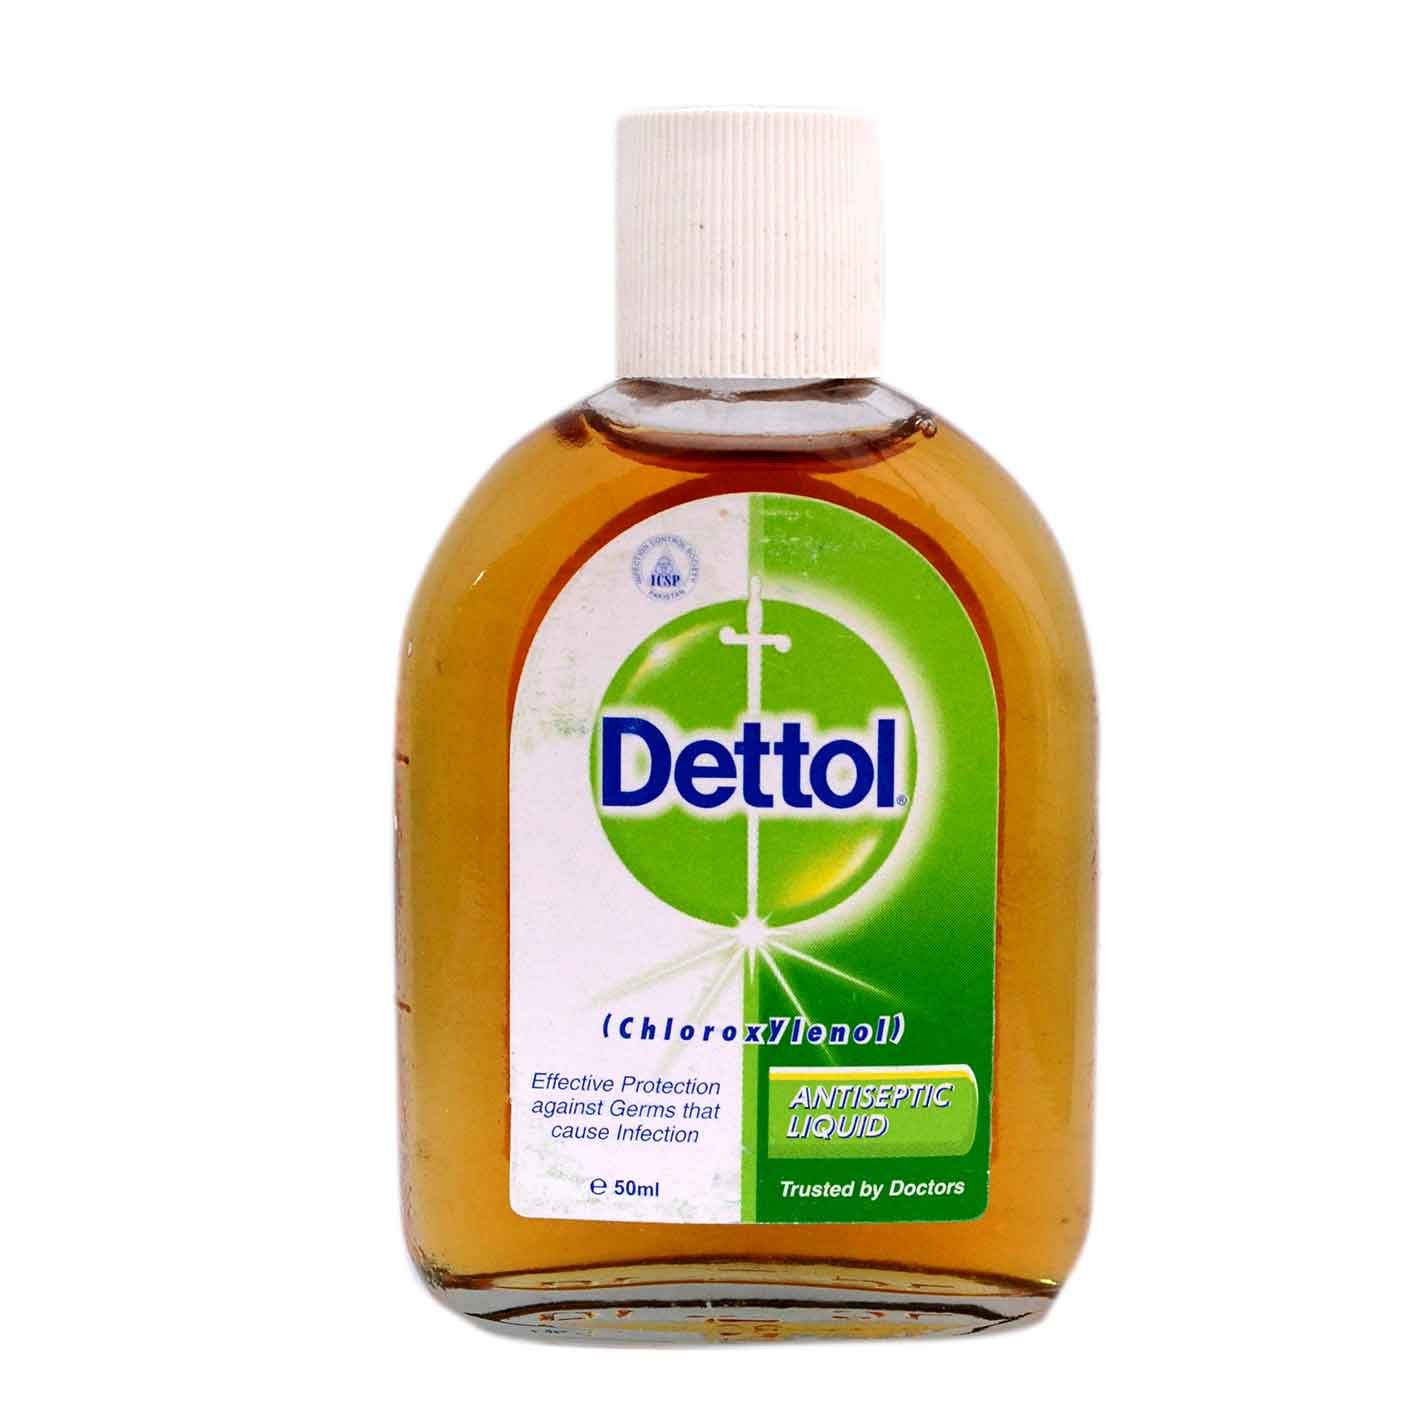 Dettol Antiseptic Solution Quickneasy Health And Beauty